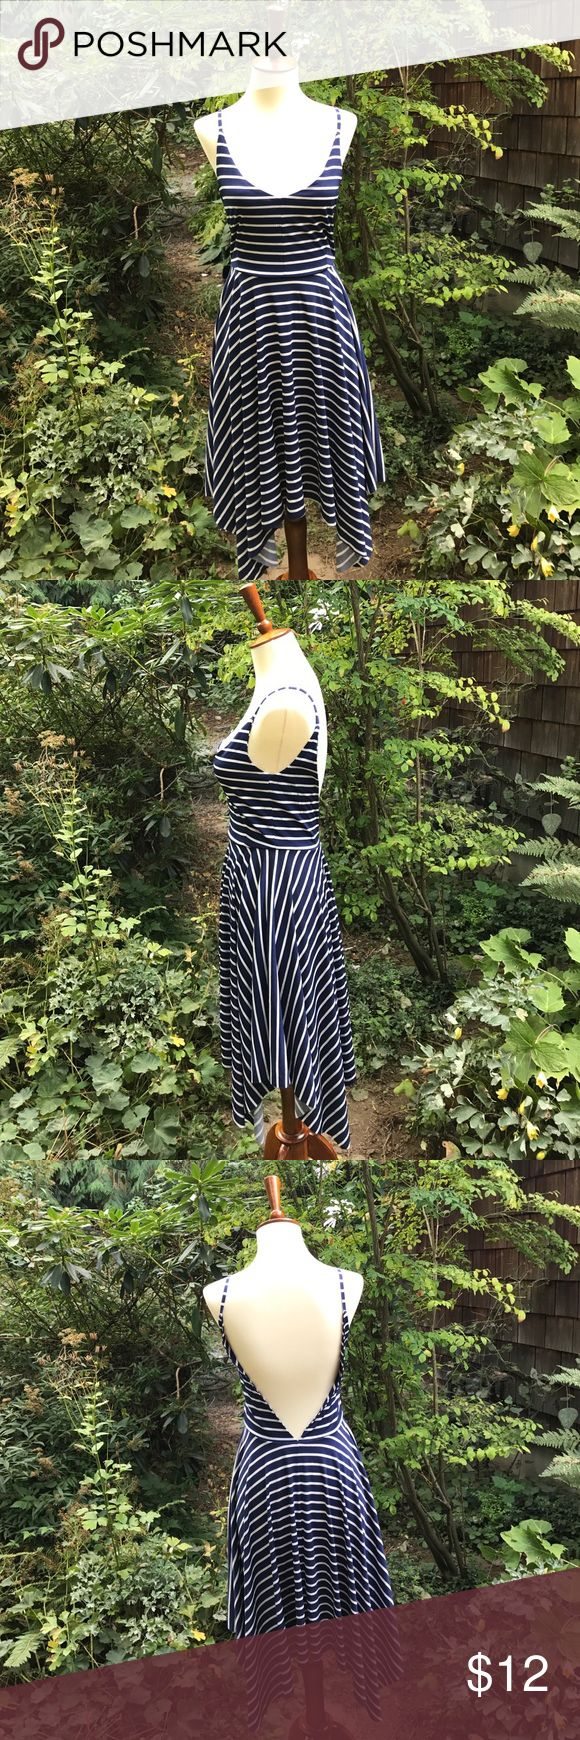 Low back Striped Dress Pretty, nautical striped dress with low cut in both back and front. Very pretty on figure, but may need to be layered with the right camisole for added coverage. Great for dancing and nights out! Dresses Midi